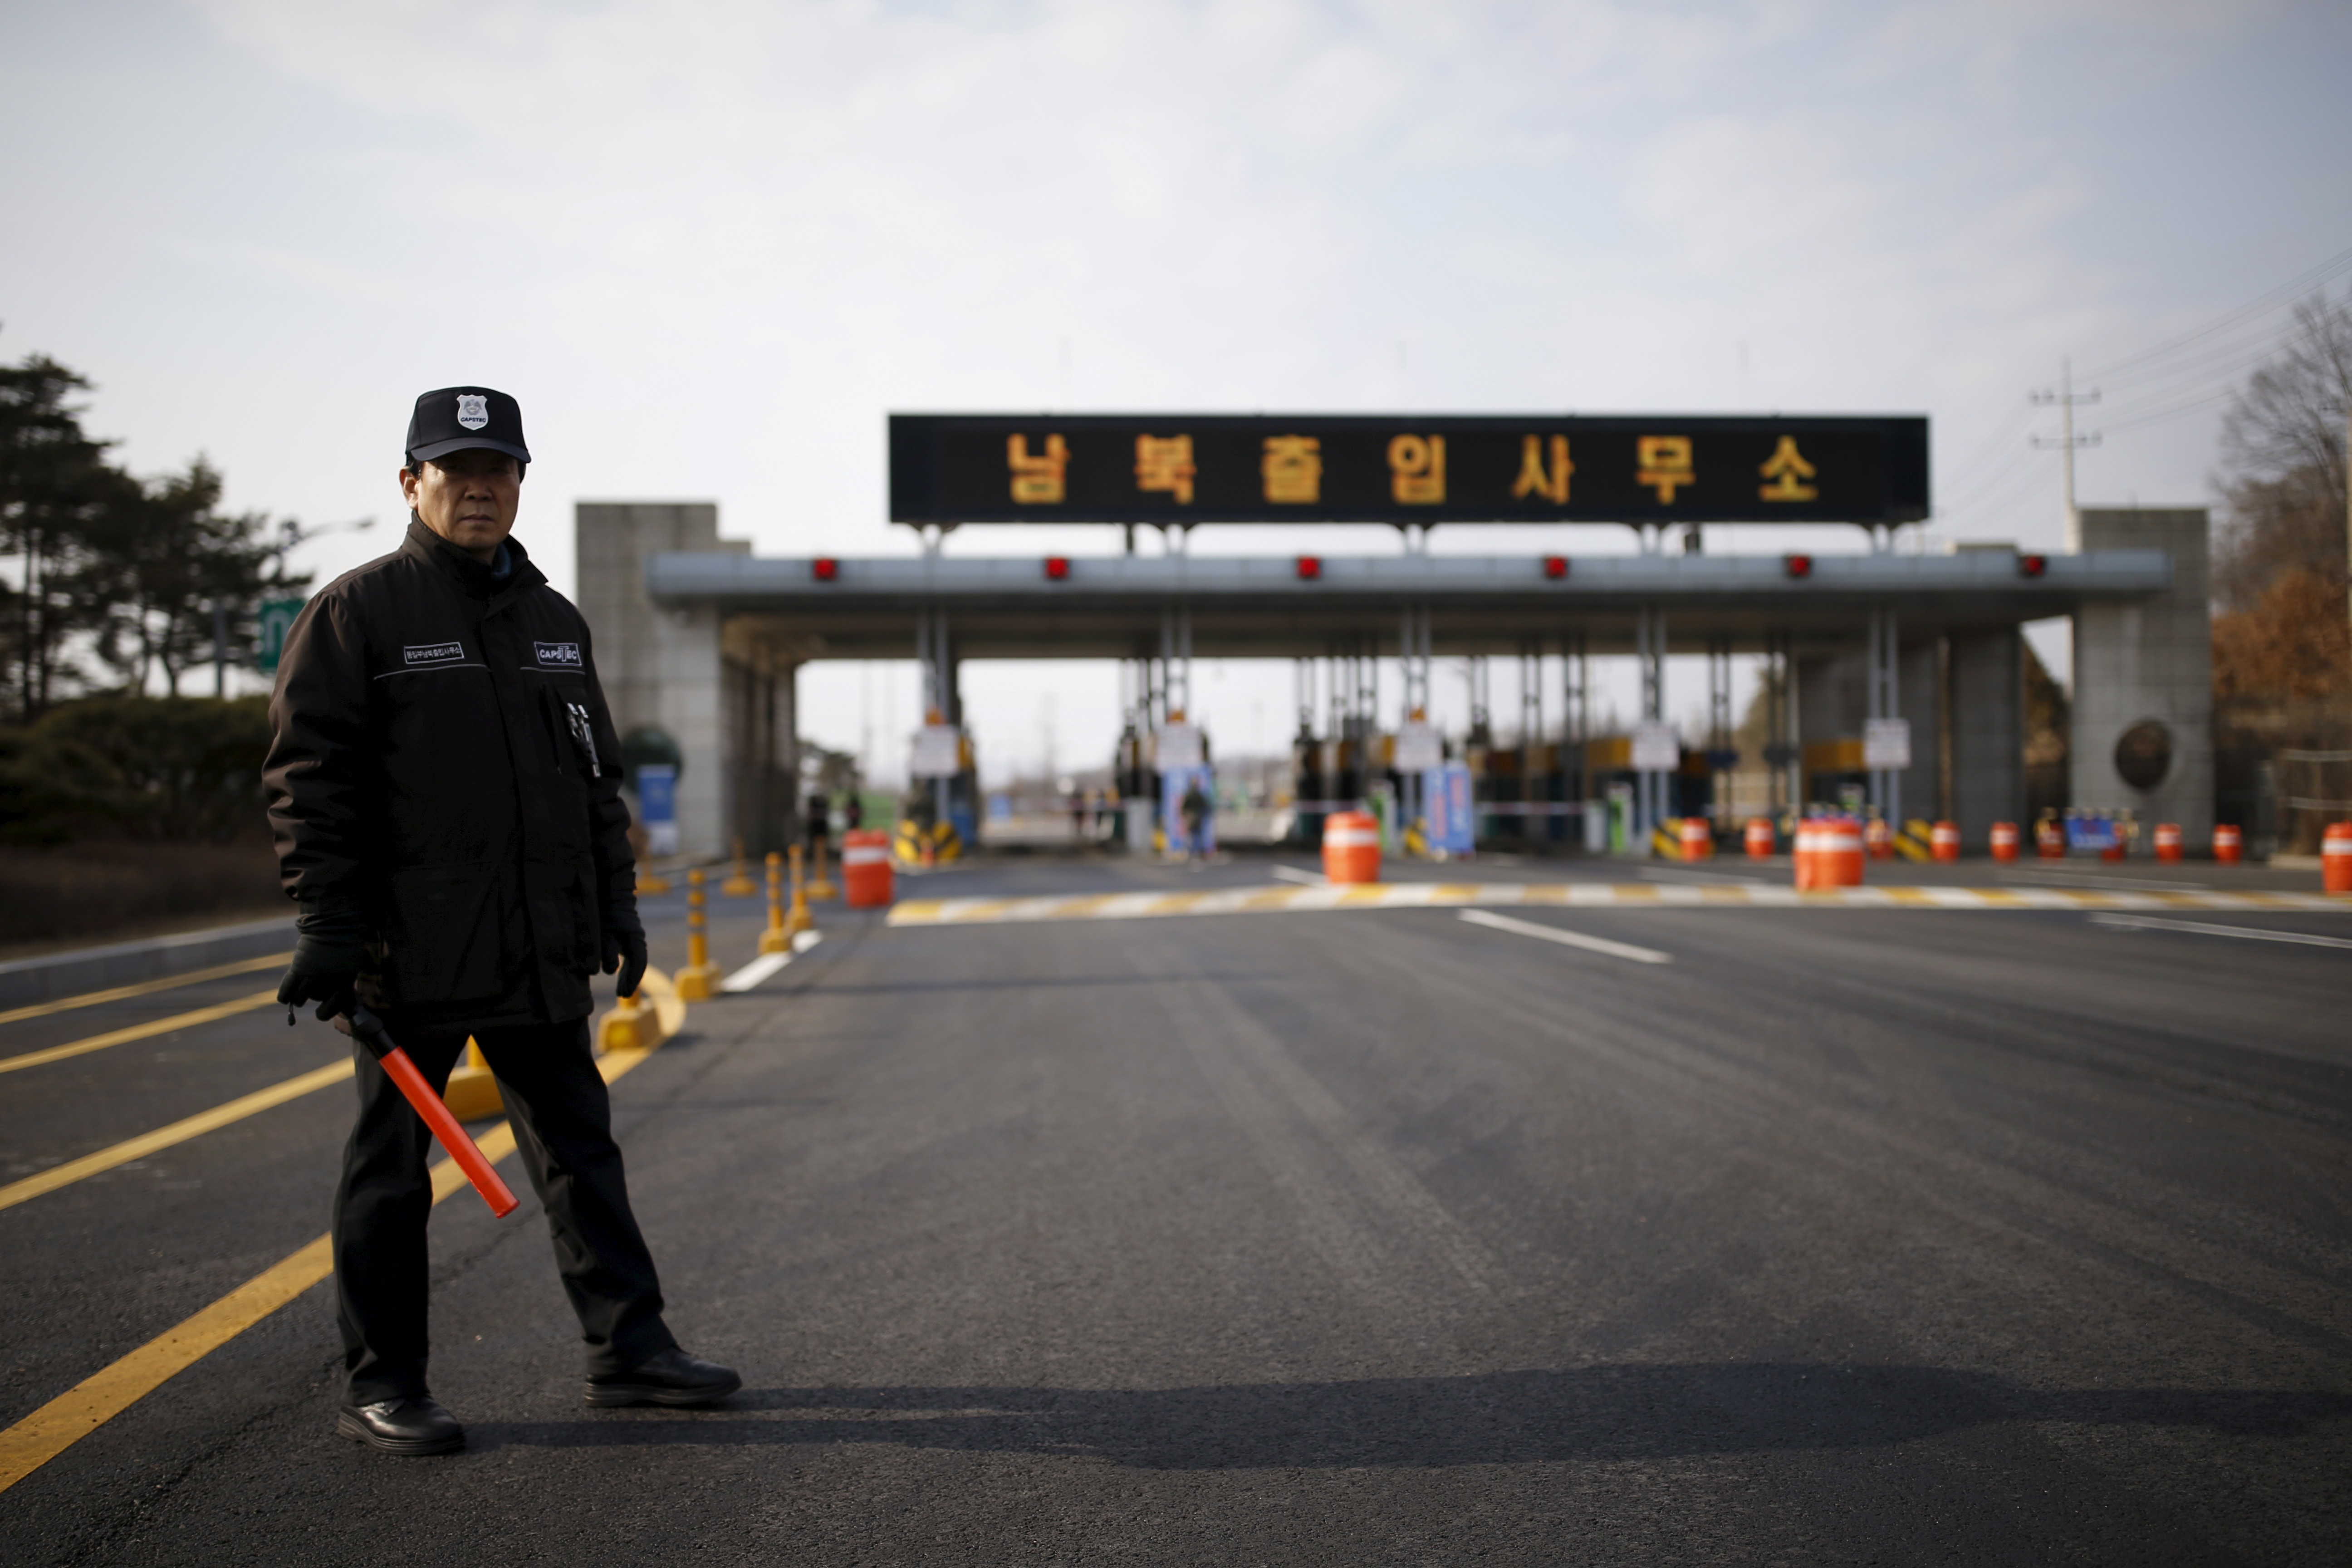 A South Korean security guard stands guard on an empty road that leads to the Kaesong Industrial Complex at the South's Customs, Immigration and Quarantine, just south of the demilitarized zone separating the two Koreas, in Paju, South Korea, on Feb. 11, 2016